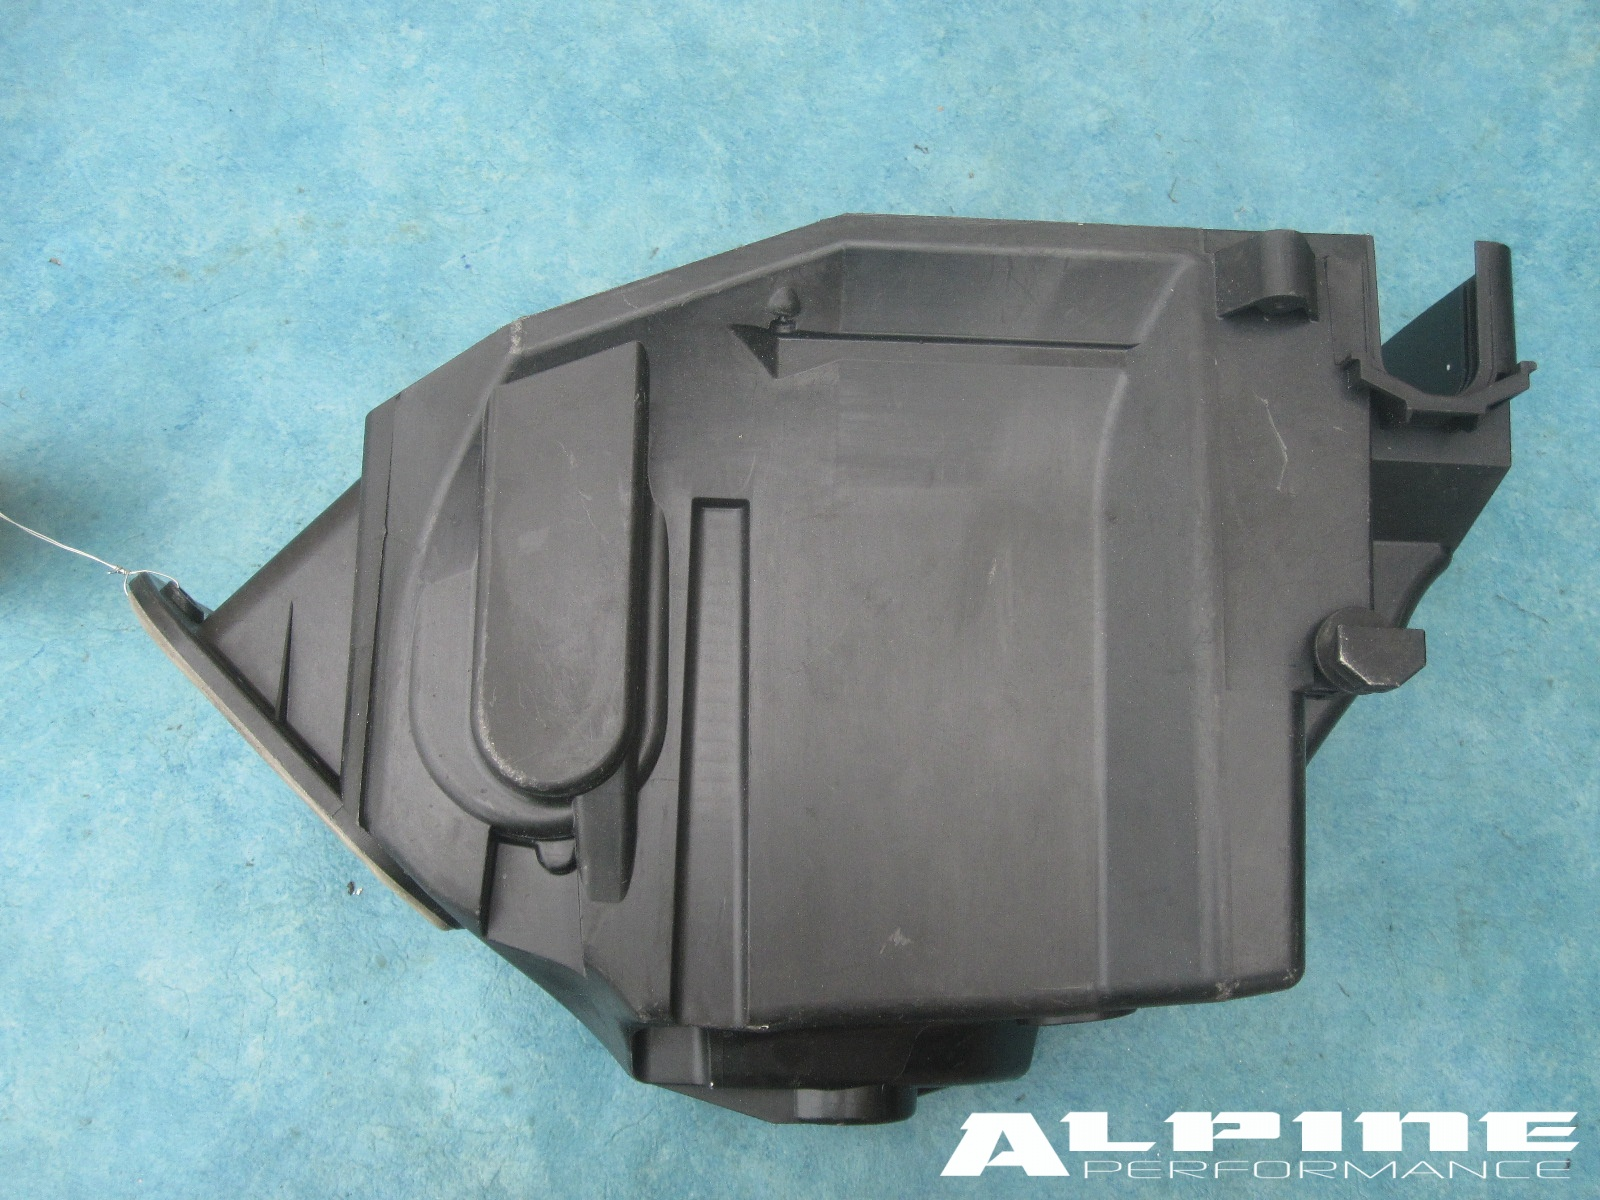 Origianal MERCEDES BENZ S550 CL550 LEFT CASE HOUSING FUSE BOX COVER ...